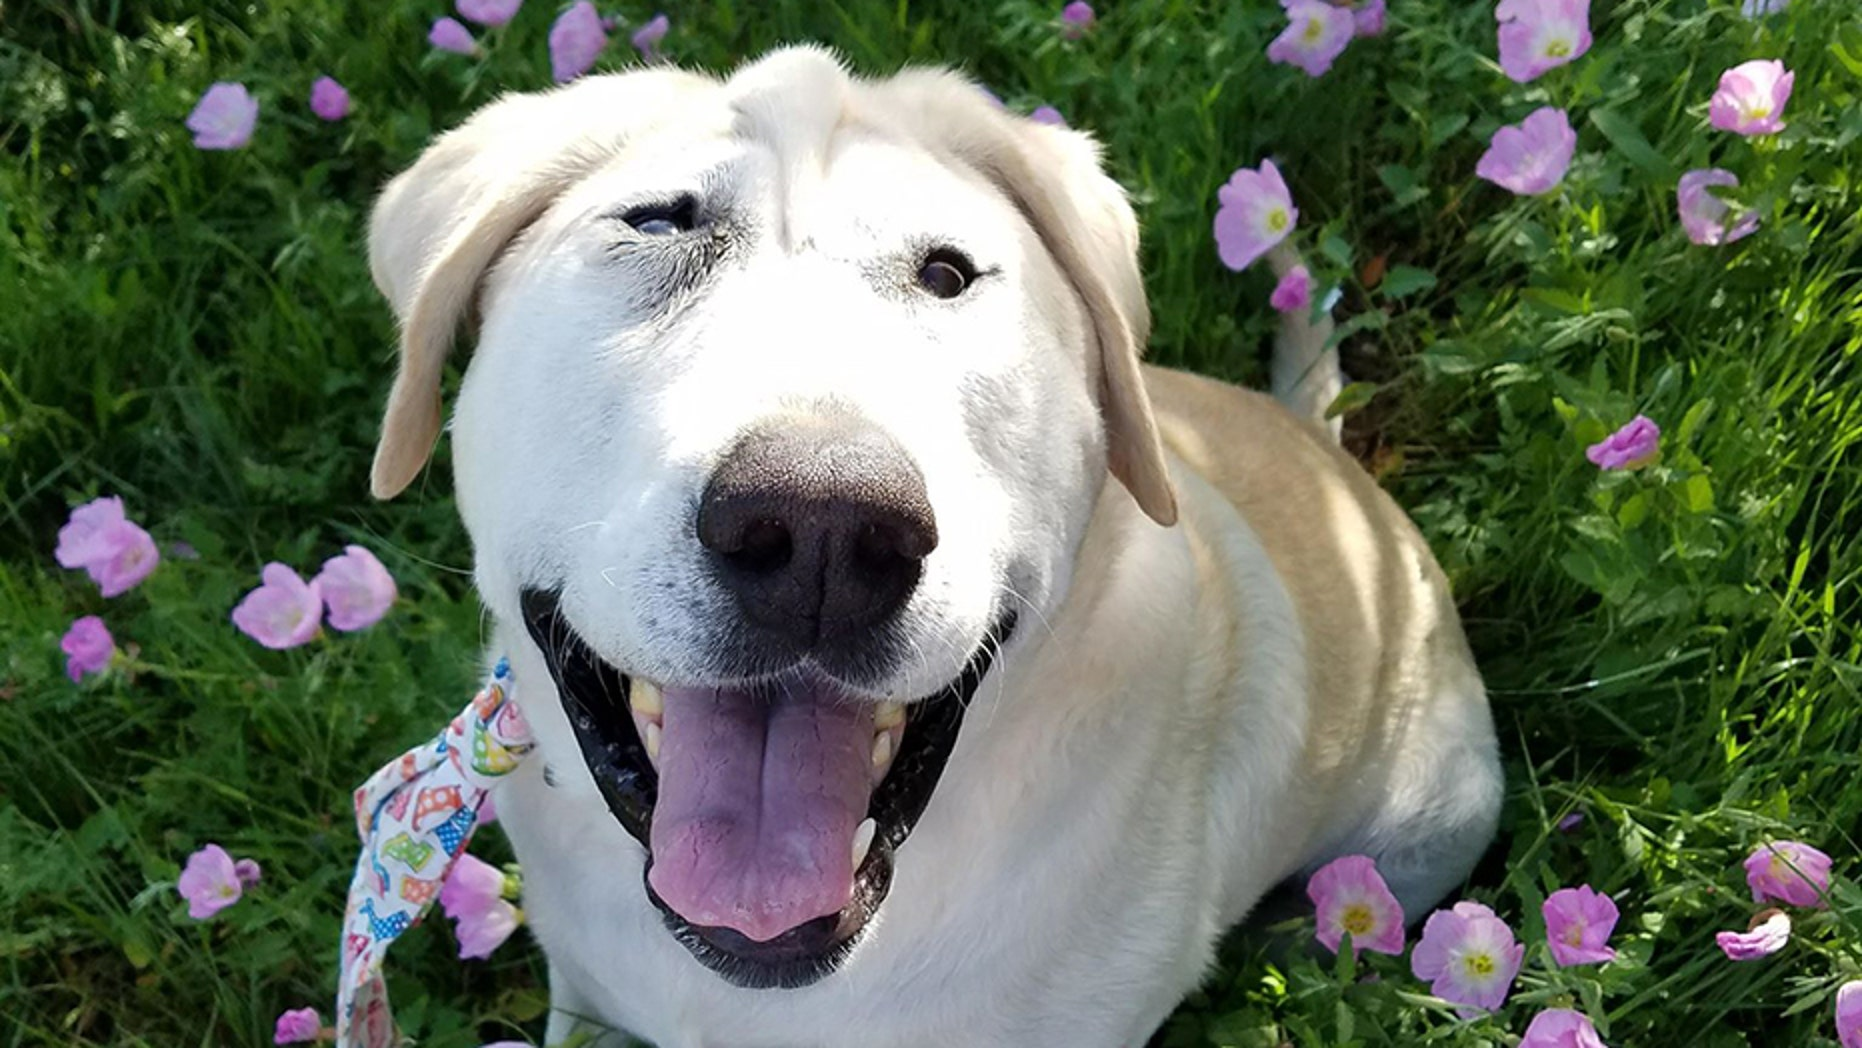 Beaux Tox, a 6-year-old Labrador Retriever, had been neglected for five years in a Texas backyard until April 2017, when Jamie Hulit adopted him.